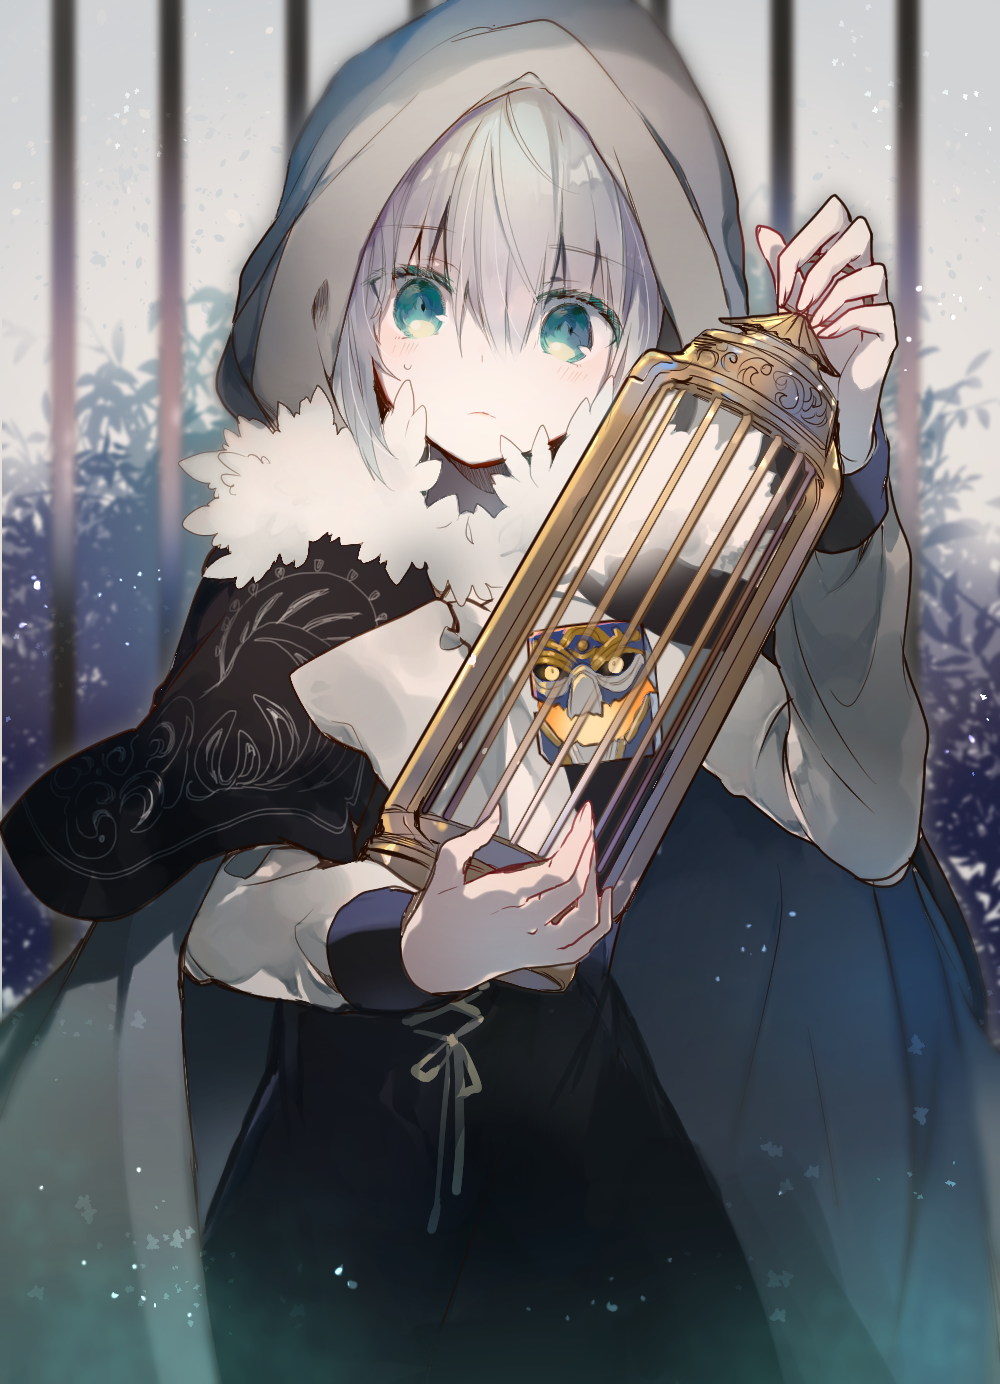 1girl add_(lord_el-melloi_ii) bangs blurry blurry_background blush cage cloak closed_mouth cowboy_shot creature cube cyawa dress eyebrows_visible_through_hair fate_(series) frown fur_trim gray_(lord_el-melloi_ii) green_eyes grey_hair hand_up highres holding hood hood_up hooded_cloak long_sleeves looking_at_viewer lord_el-melloi_ii_case_files sweat